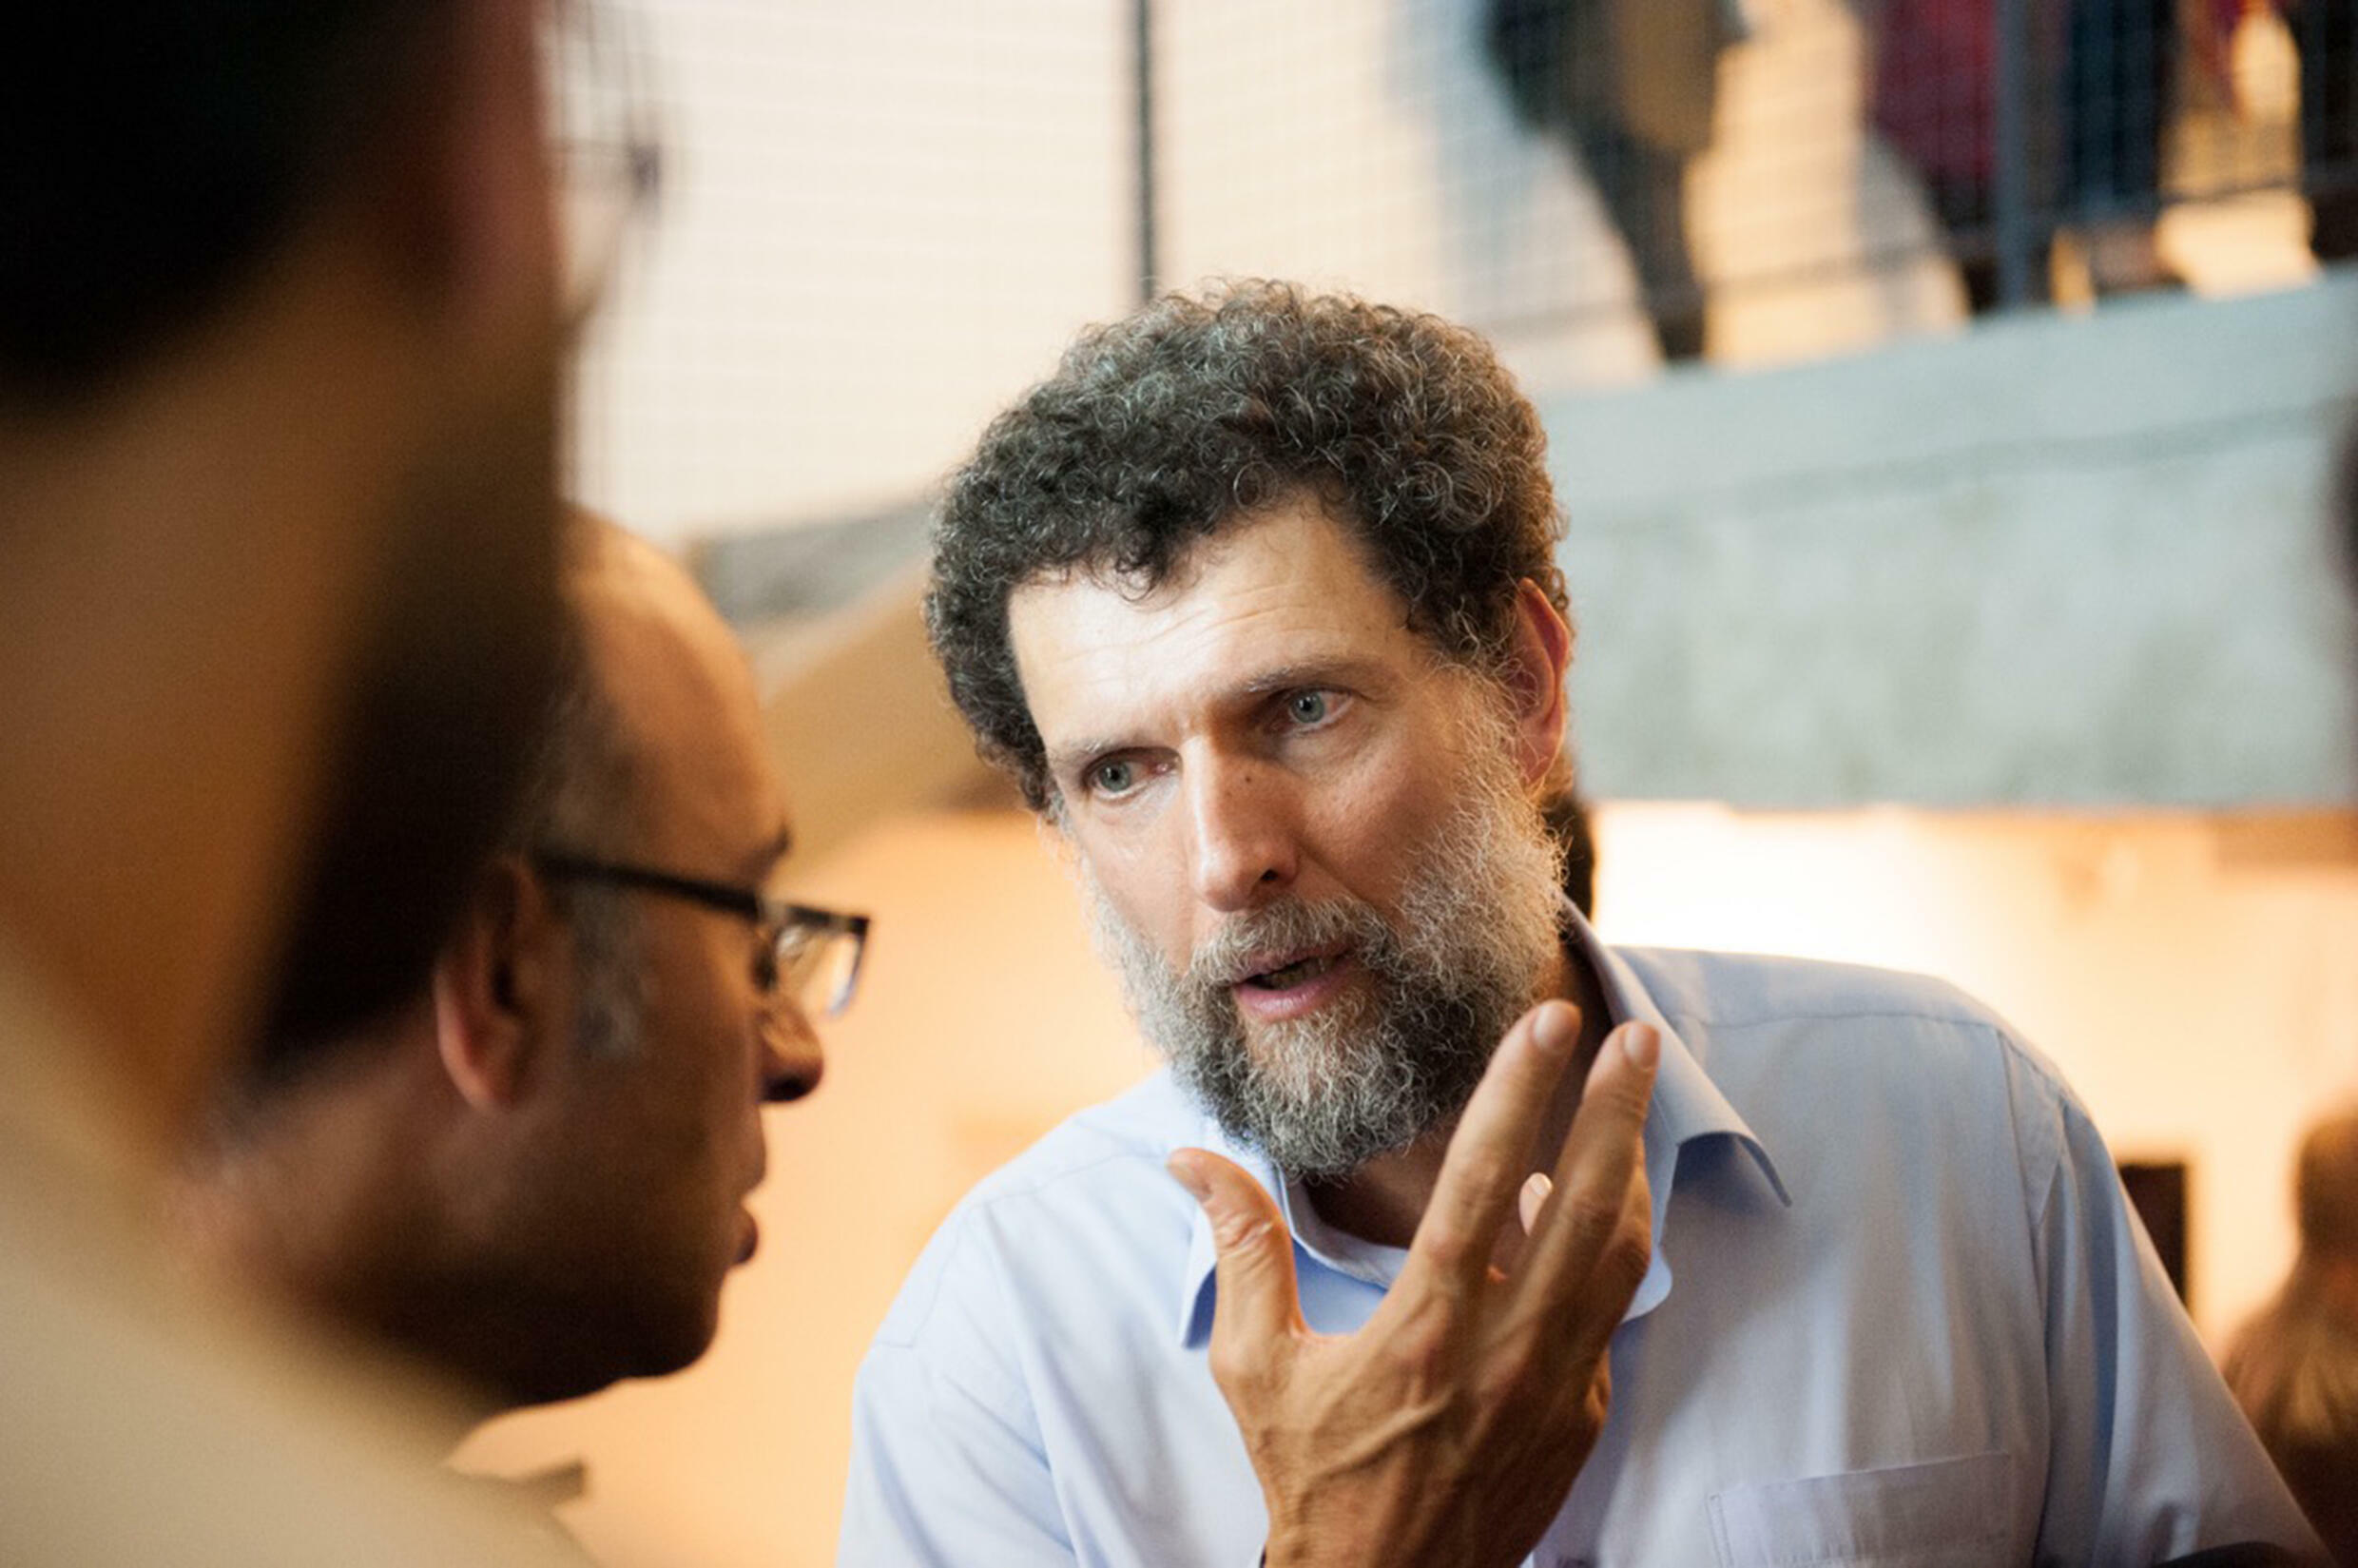 Parisian-born philanthropist and activist Osman Kavala, 64, has been in jail without a conviction since 2017